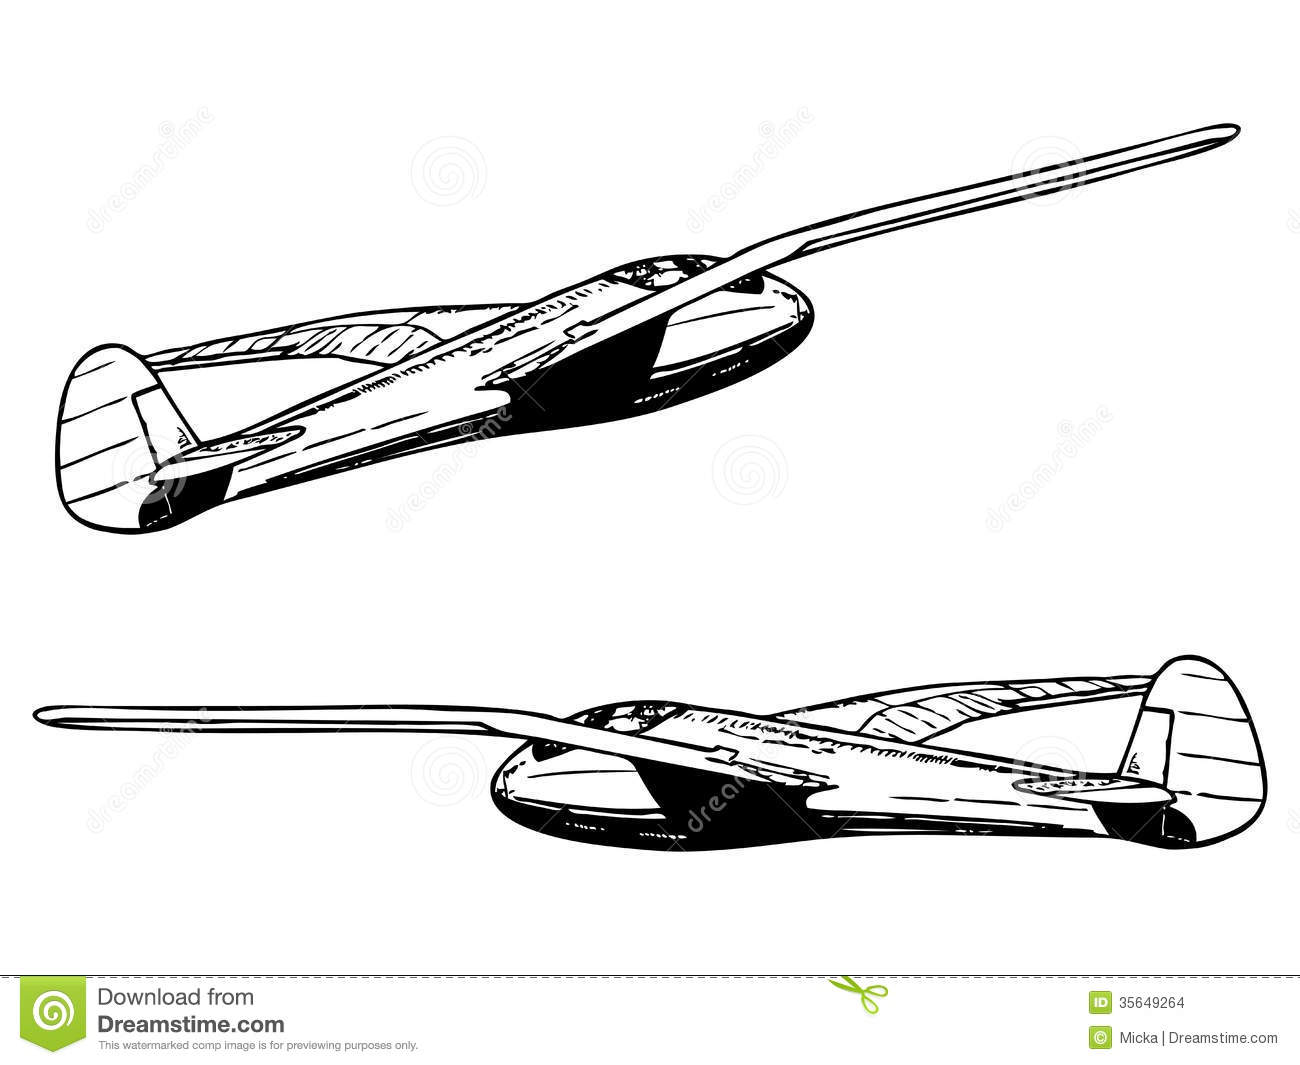 Glider sailplane in flight stock vector. Image of drawing